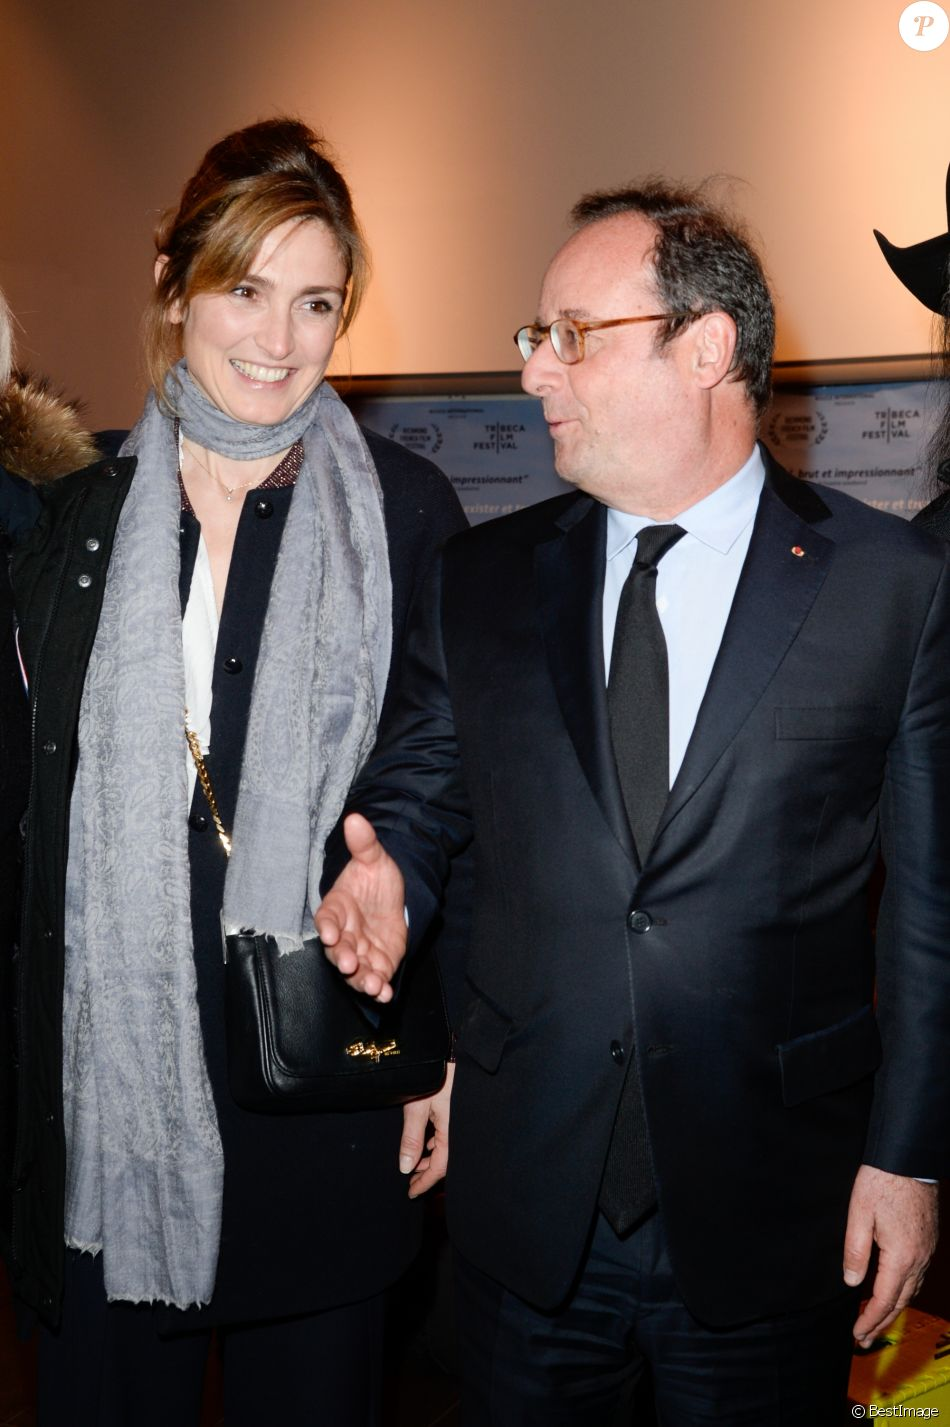 julie gayet et fran ois hollande amoureux rayonnants sur le tapis rouge purepeople. Black Bedroom Furniture Sets. Home Design Ideas